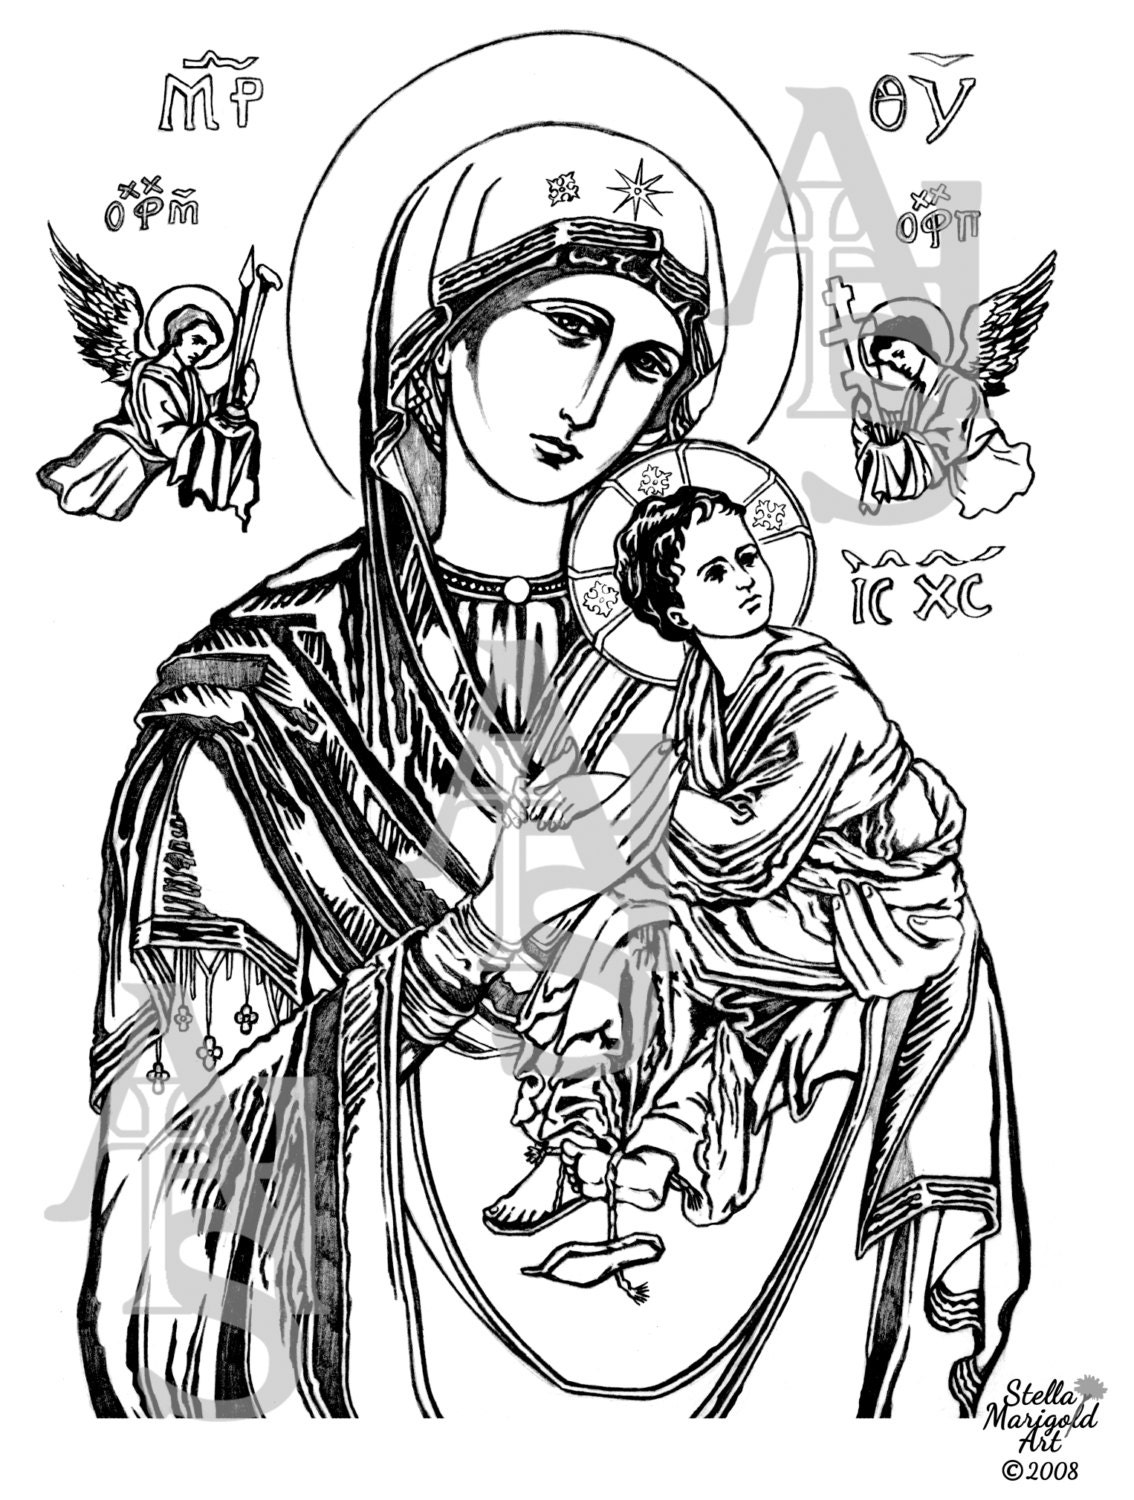 Coloring Page: Our Lady of Perpetual Help by StellaMarigoldArt